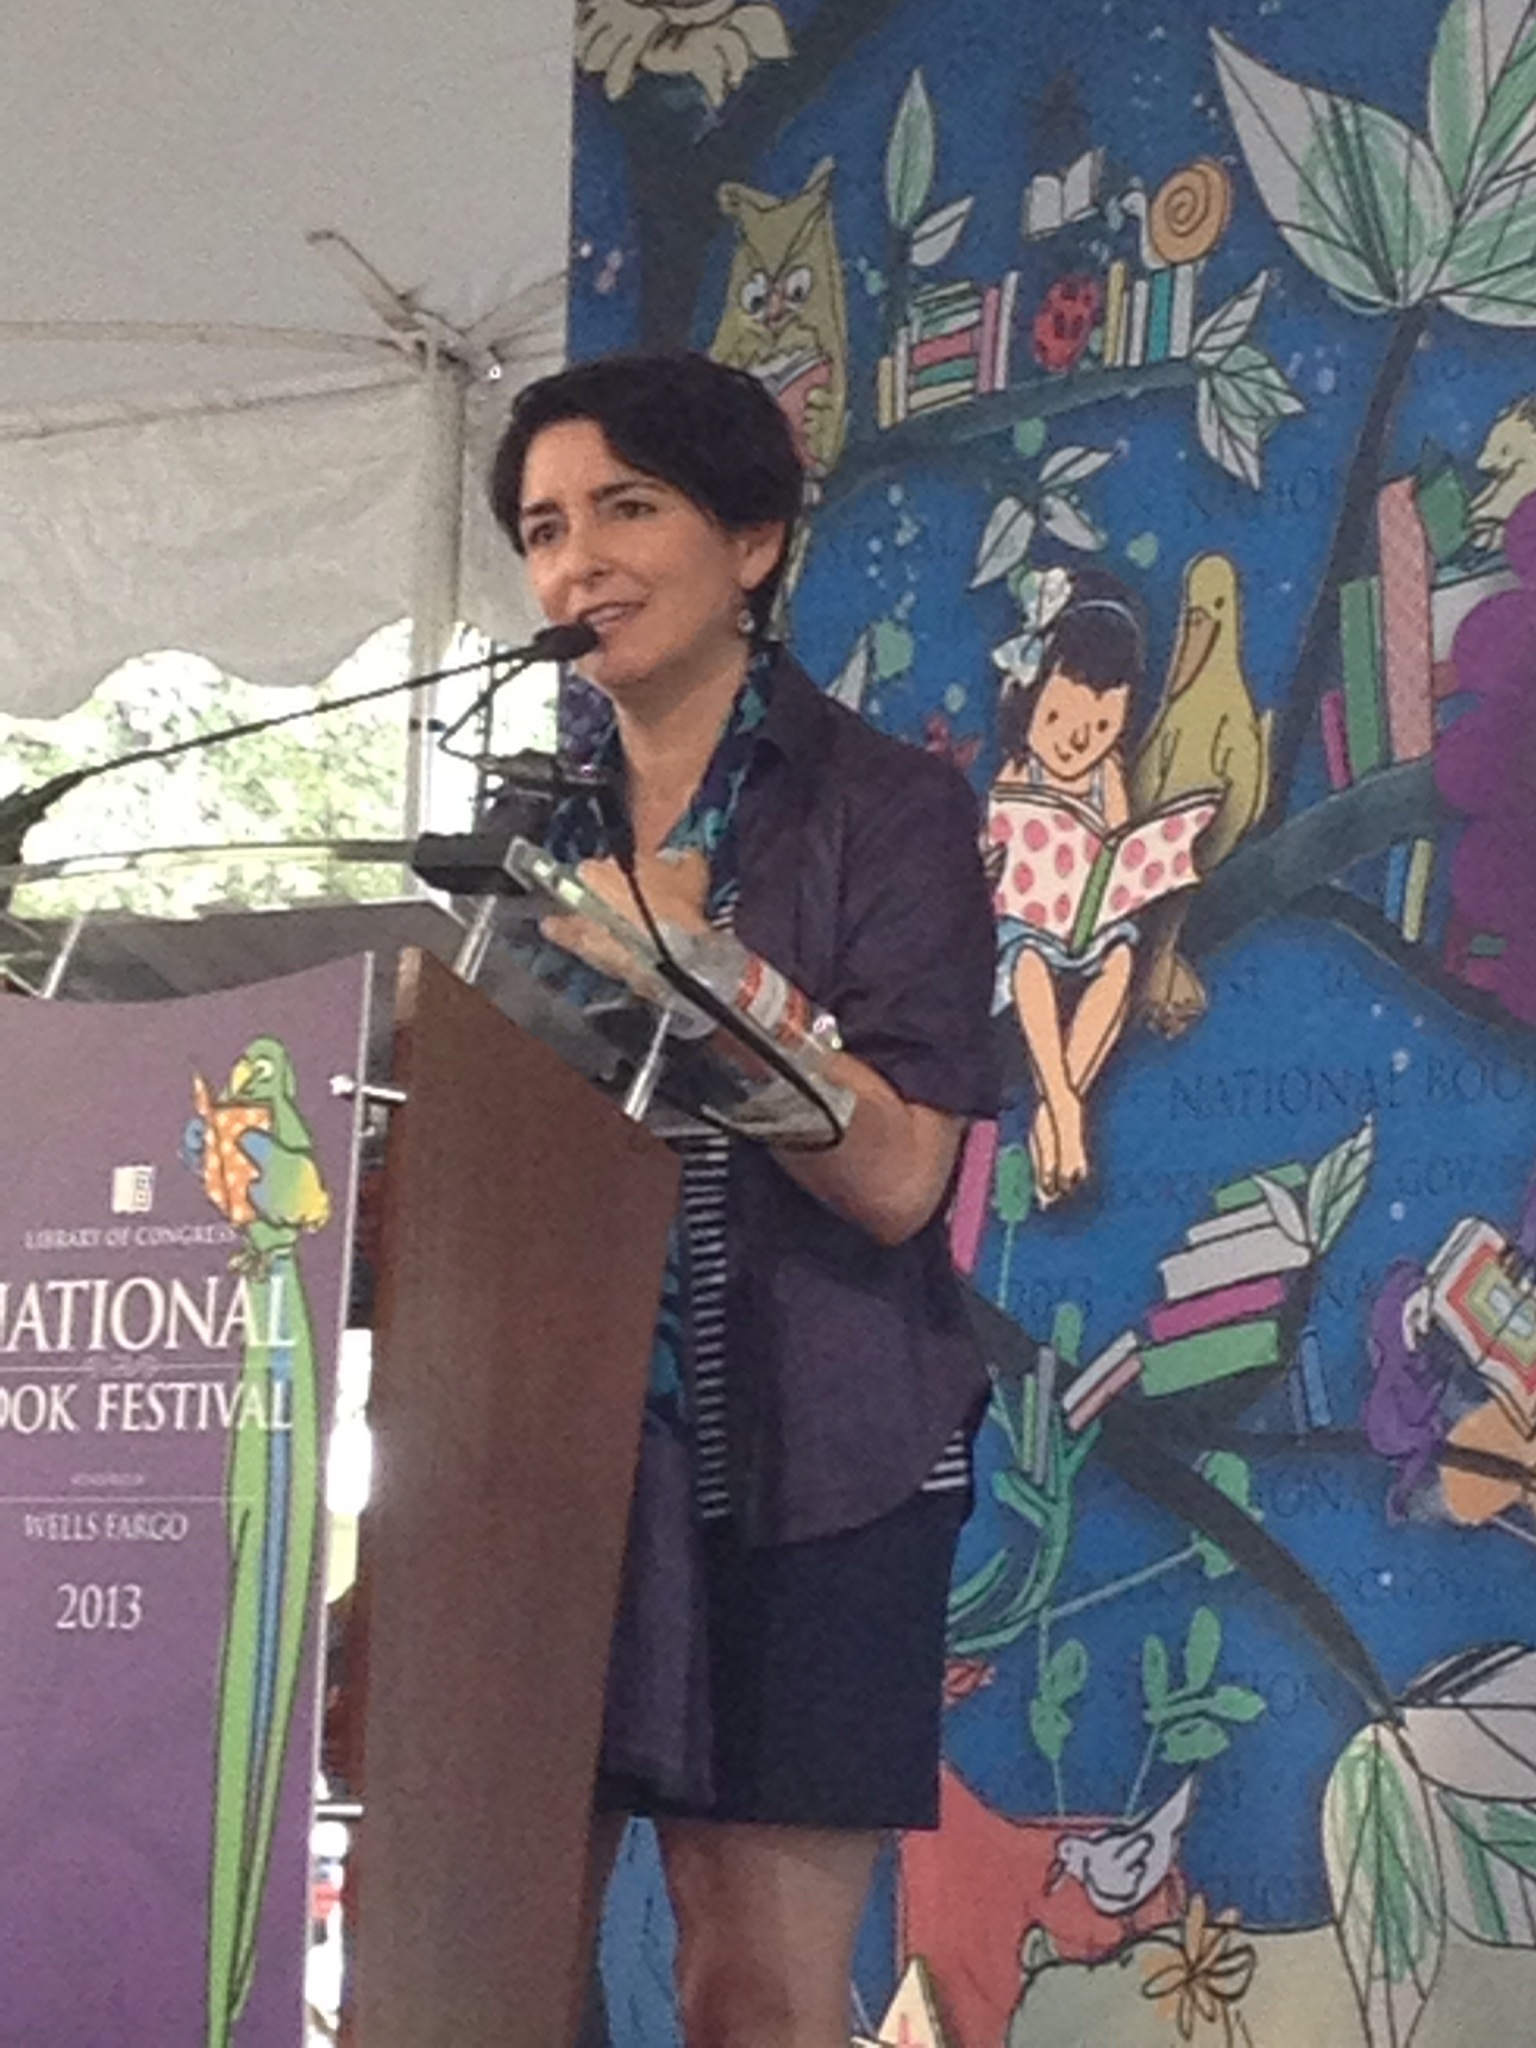 Denise speaking at the 2013 National Book Festival in Washington, DC.